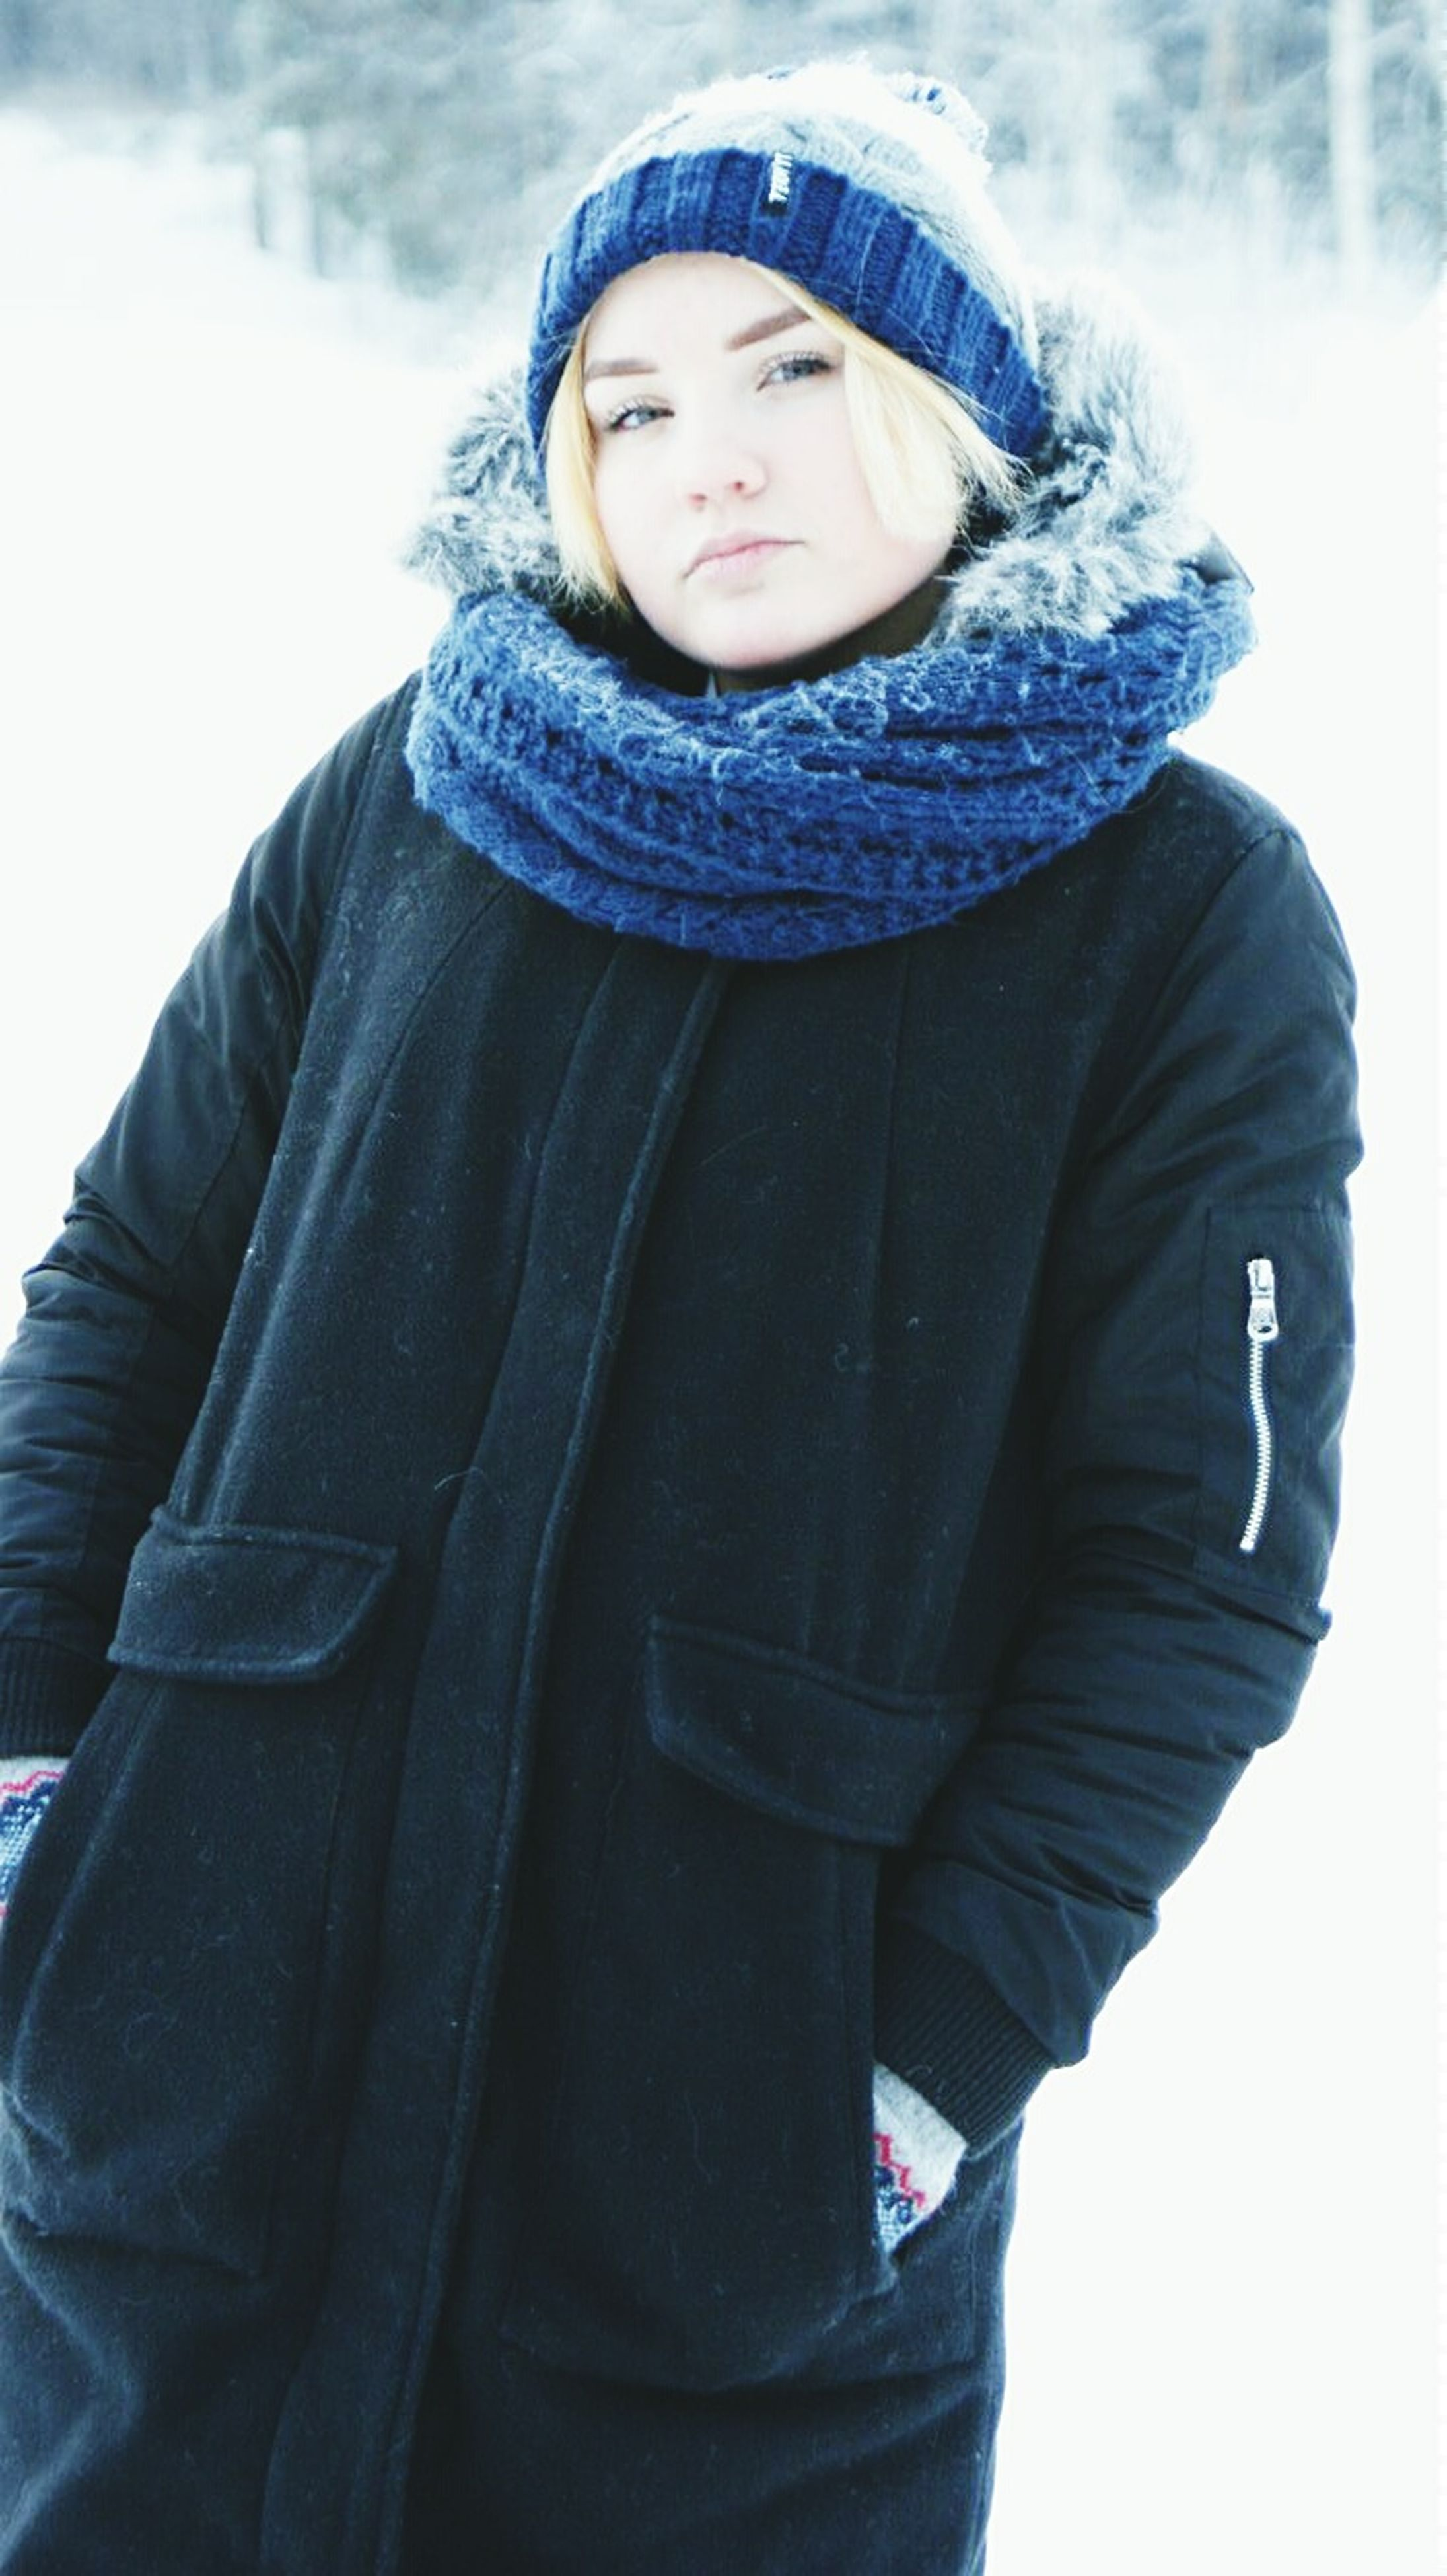 casual clothing, portrait, looking at camera, front view, lifestyles, person, young adult, leisure activity, three quarter length, standing, warm clothing, jacket, young women, smiling, waist up, low angle view, scarf